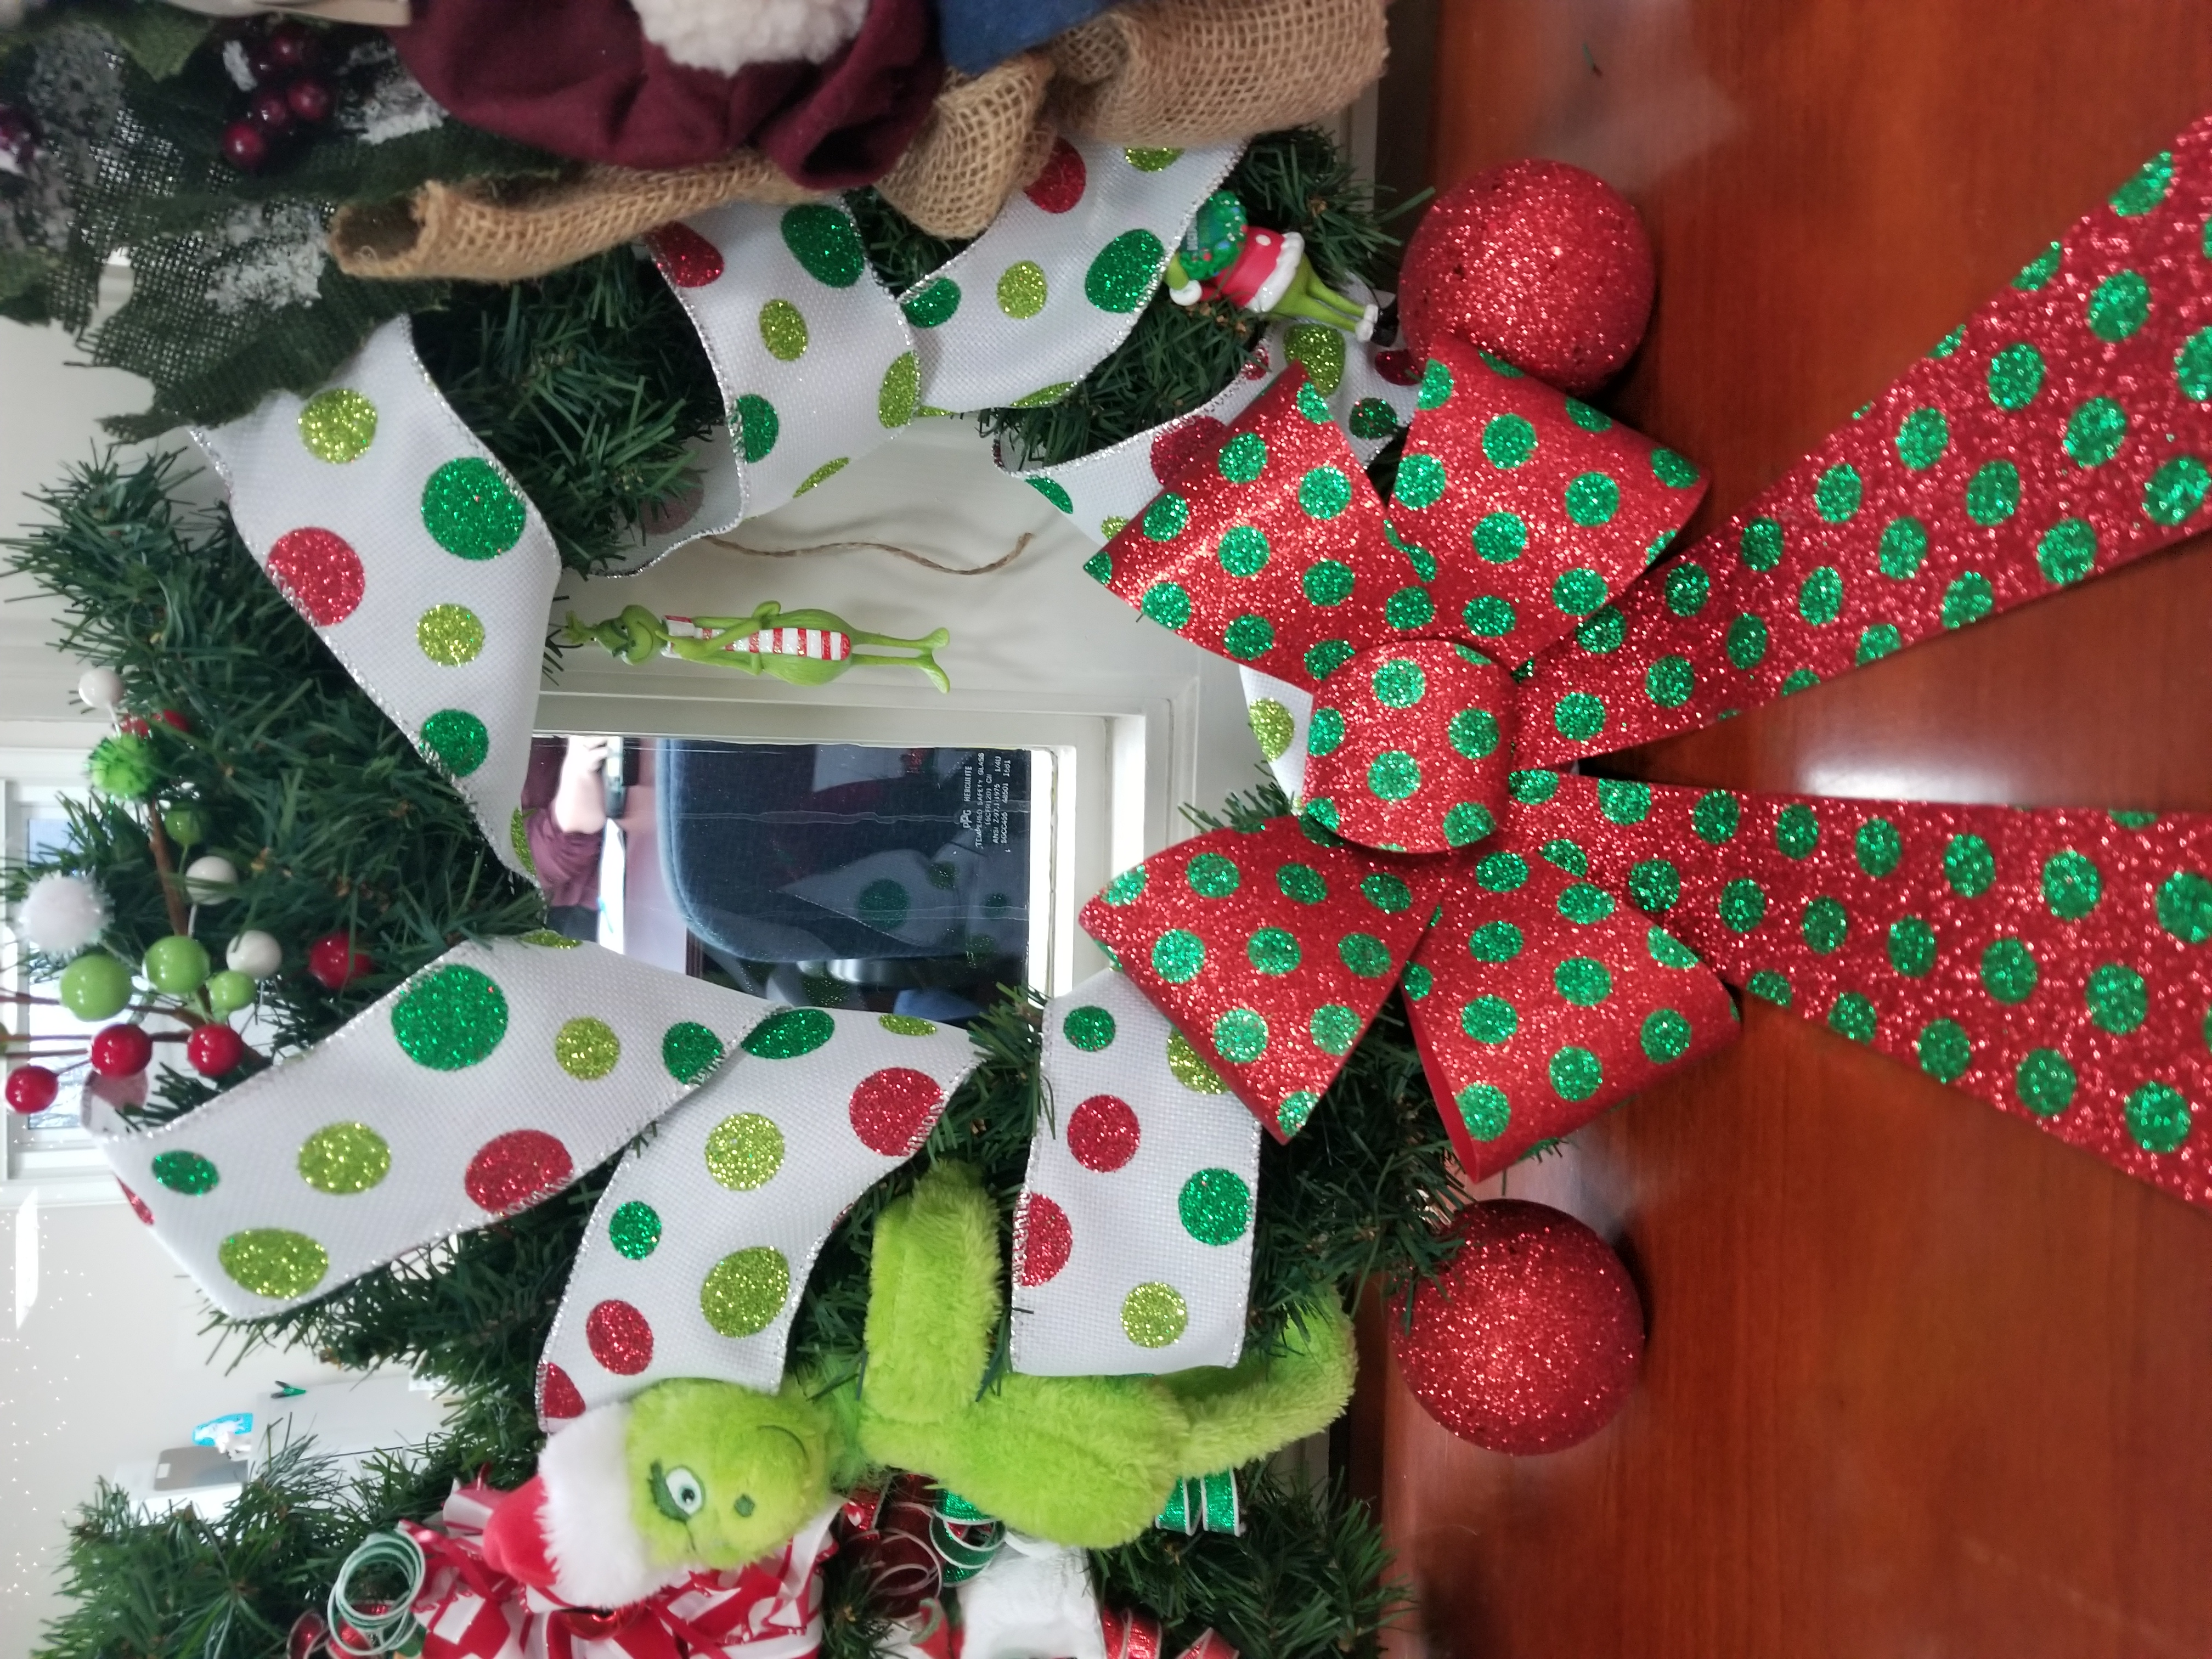 #8 Grinch Wreath